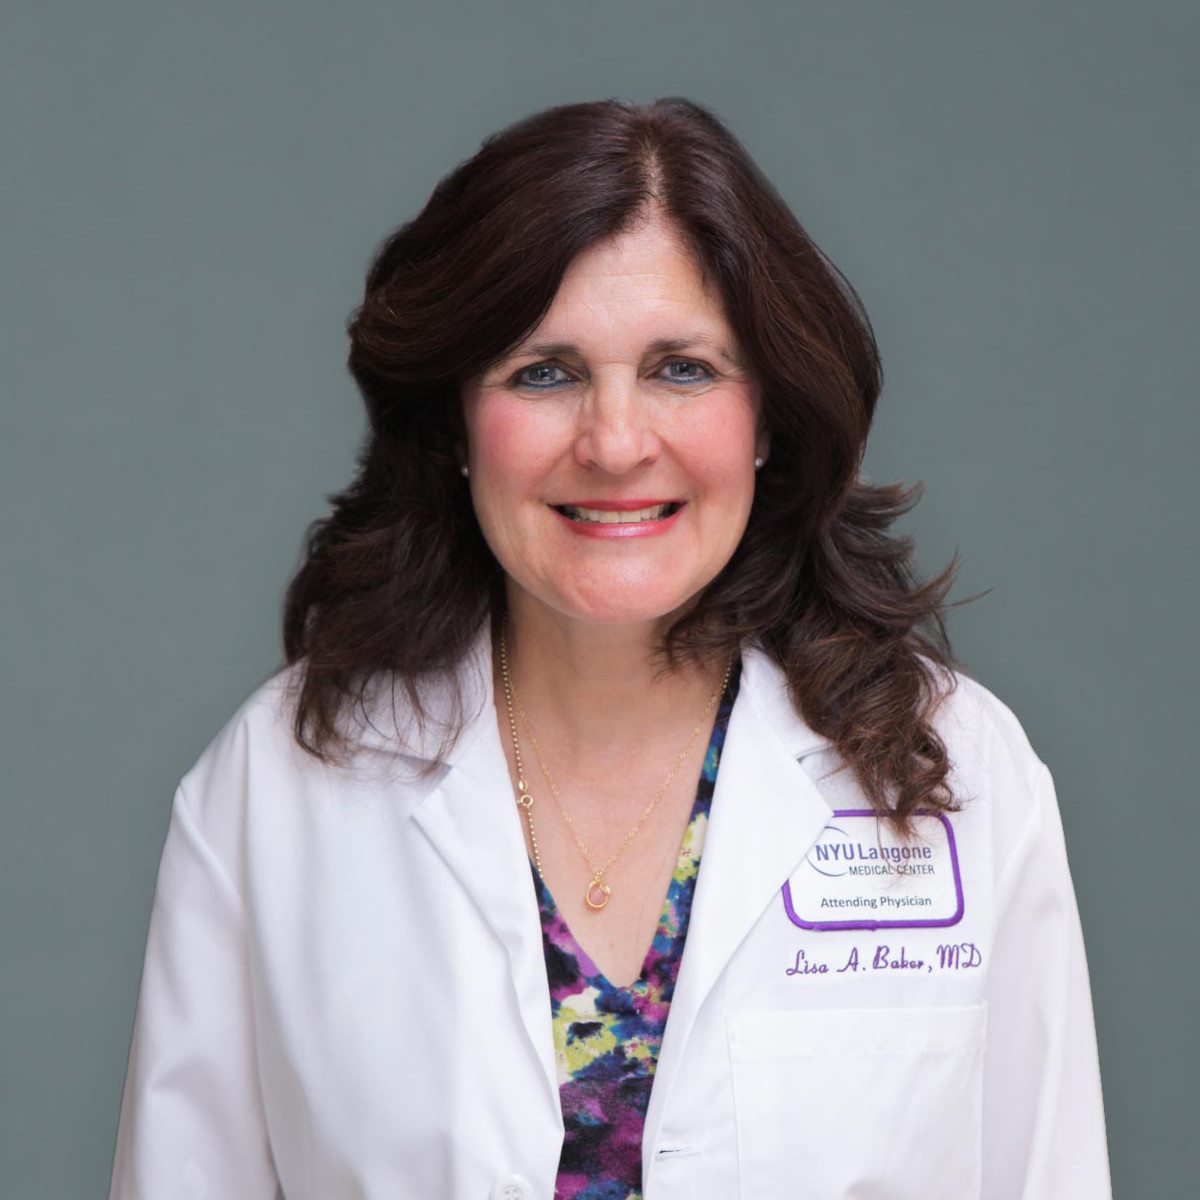 Lisa Baker,MD. Family Medicine